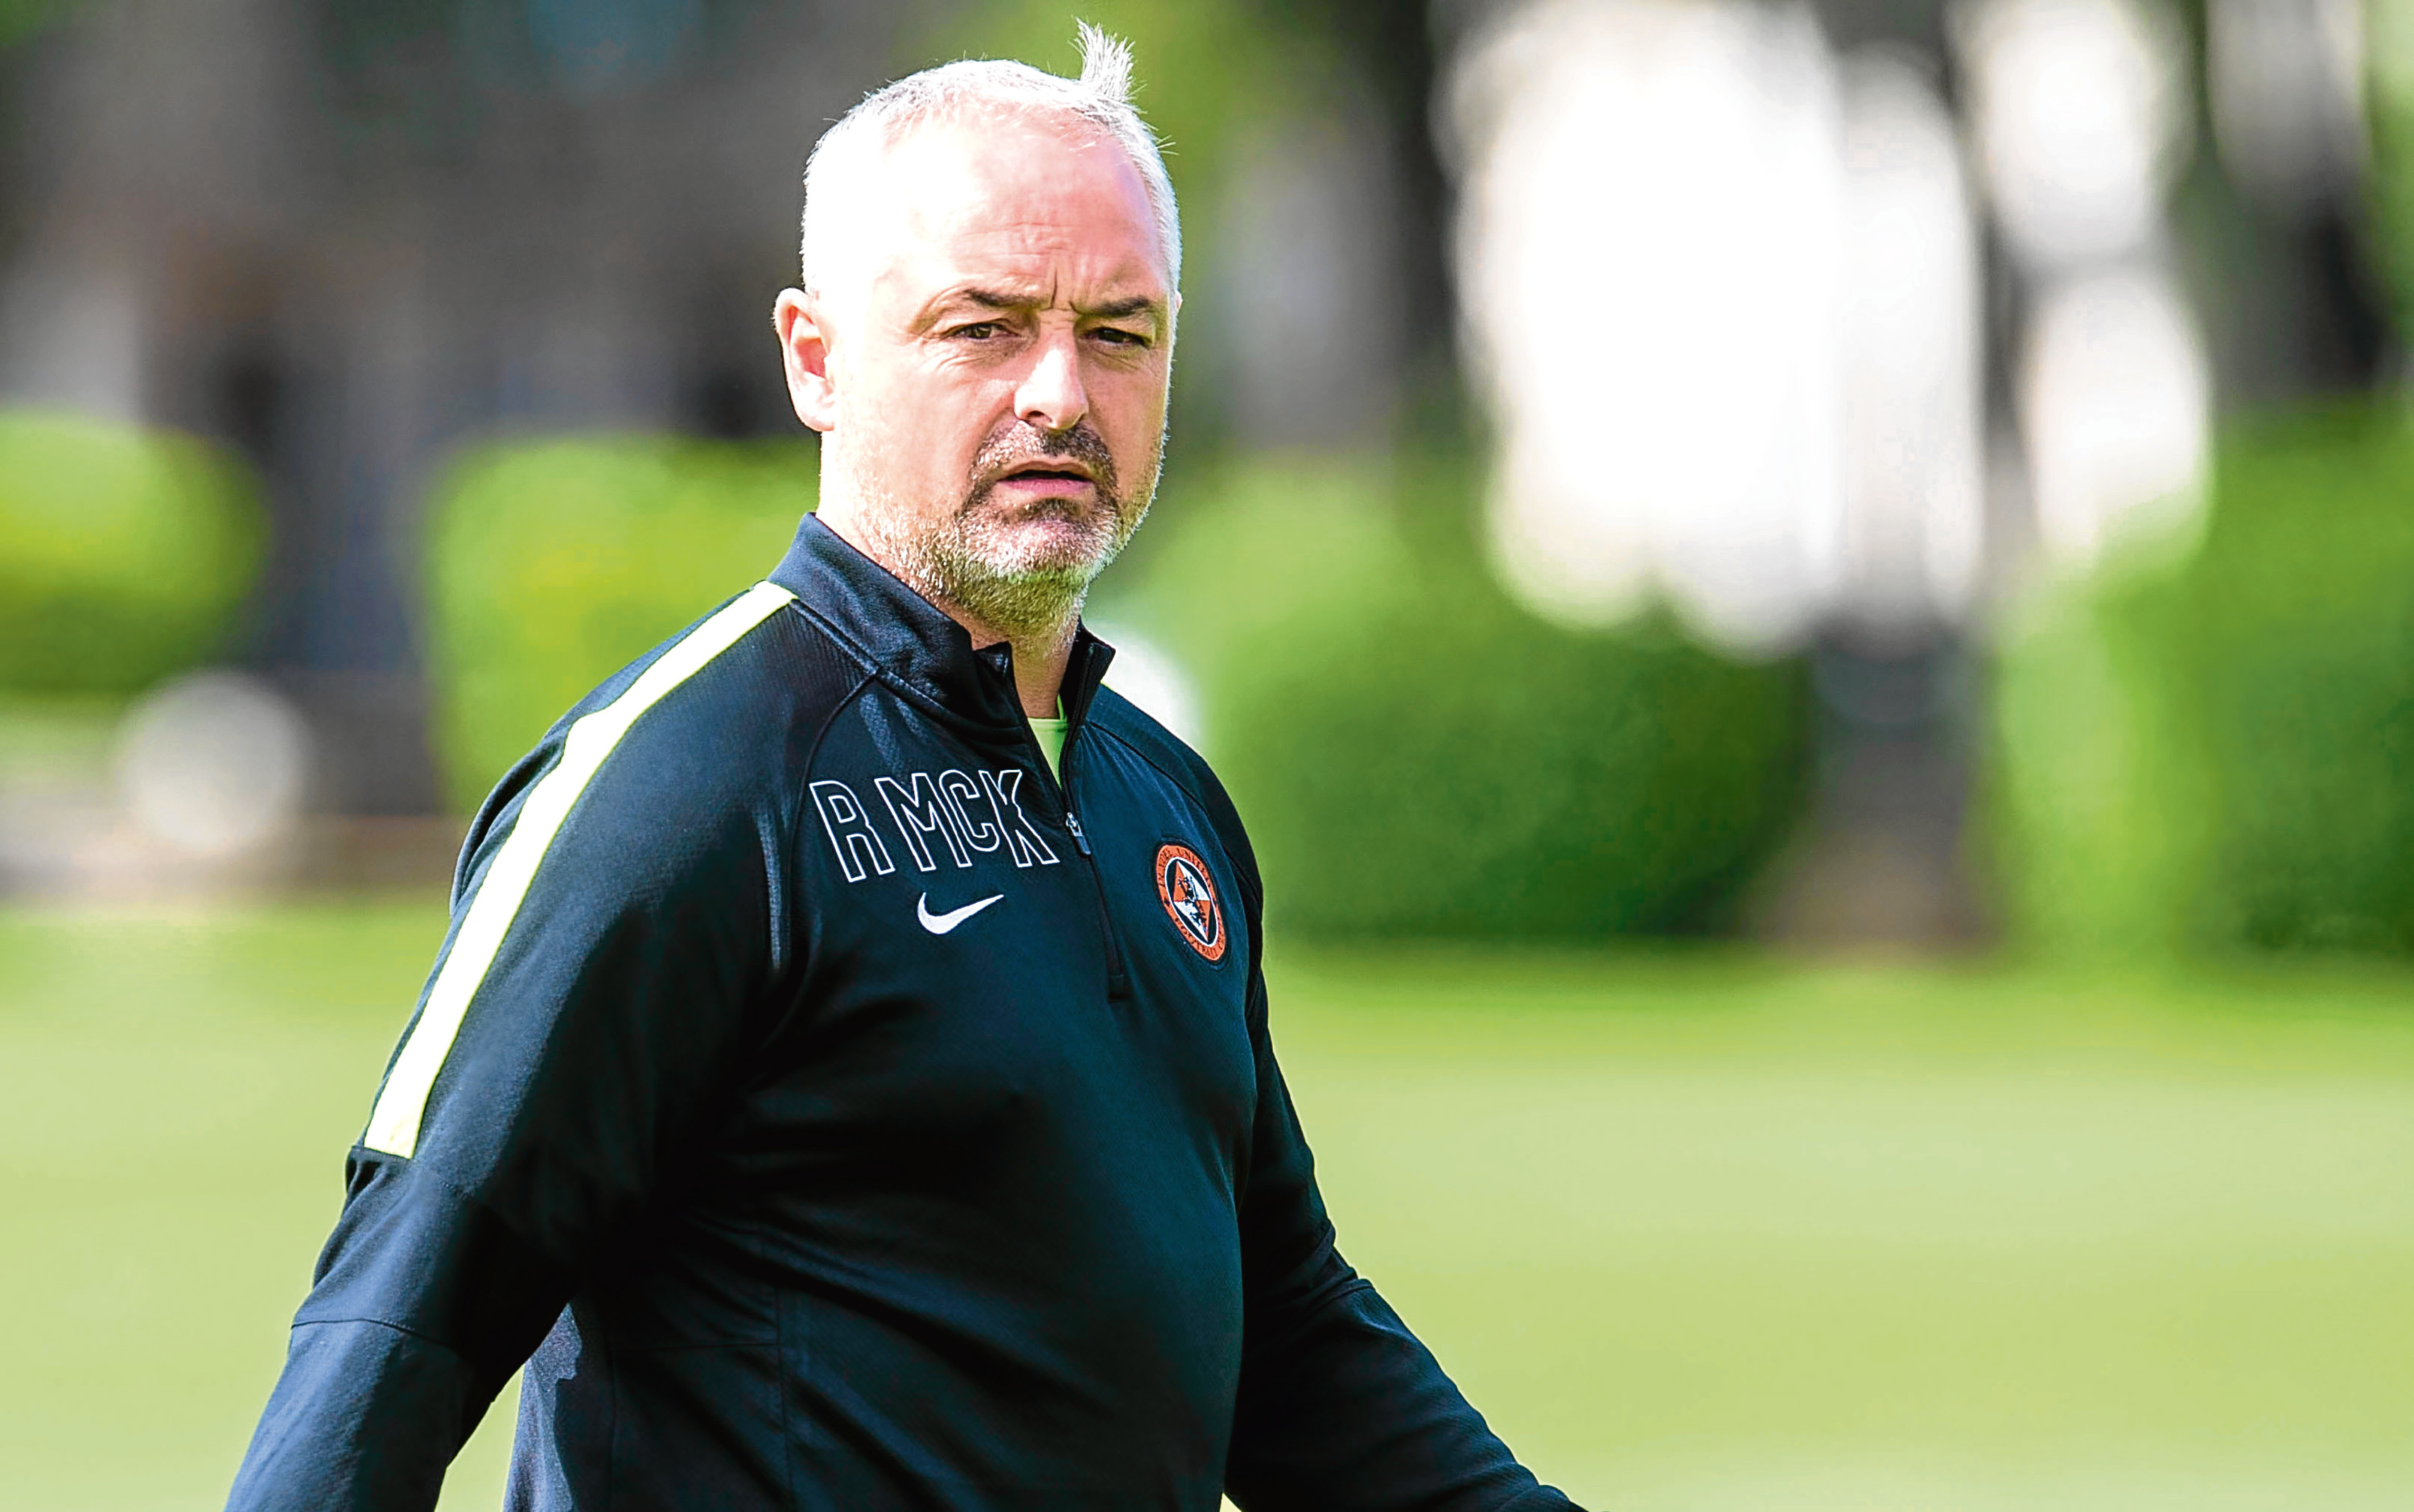 Dundee United boss Ray McKinnon could lead his side into action against Dundee next season